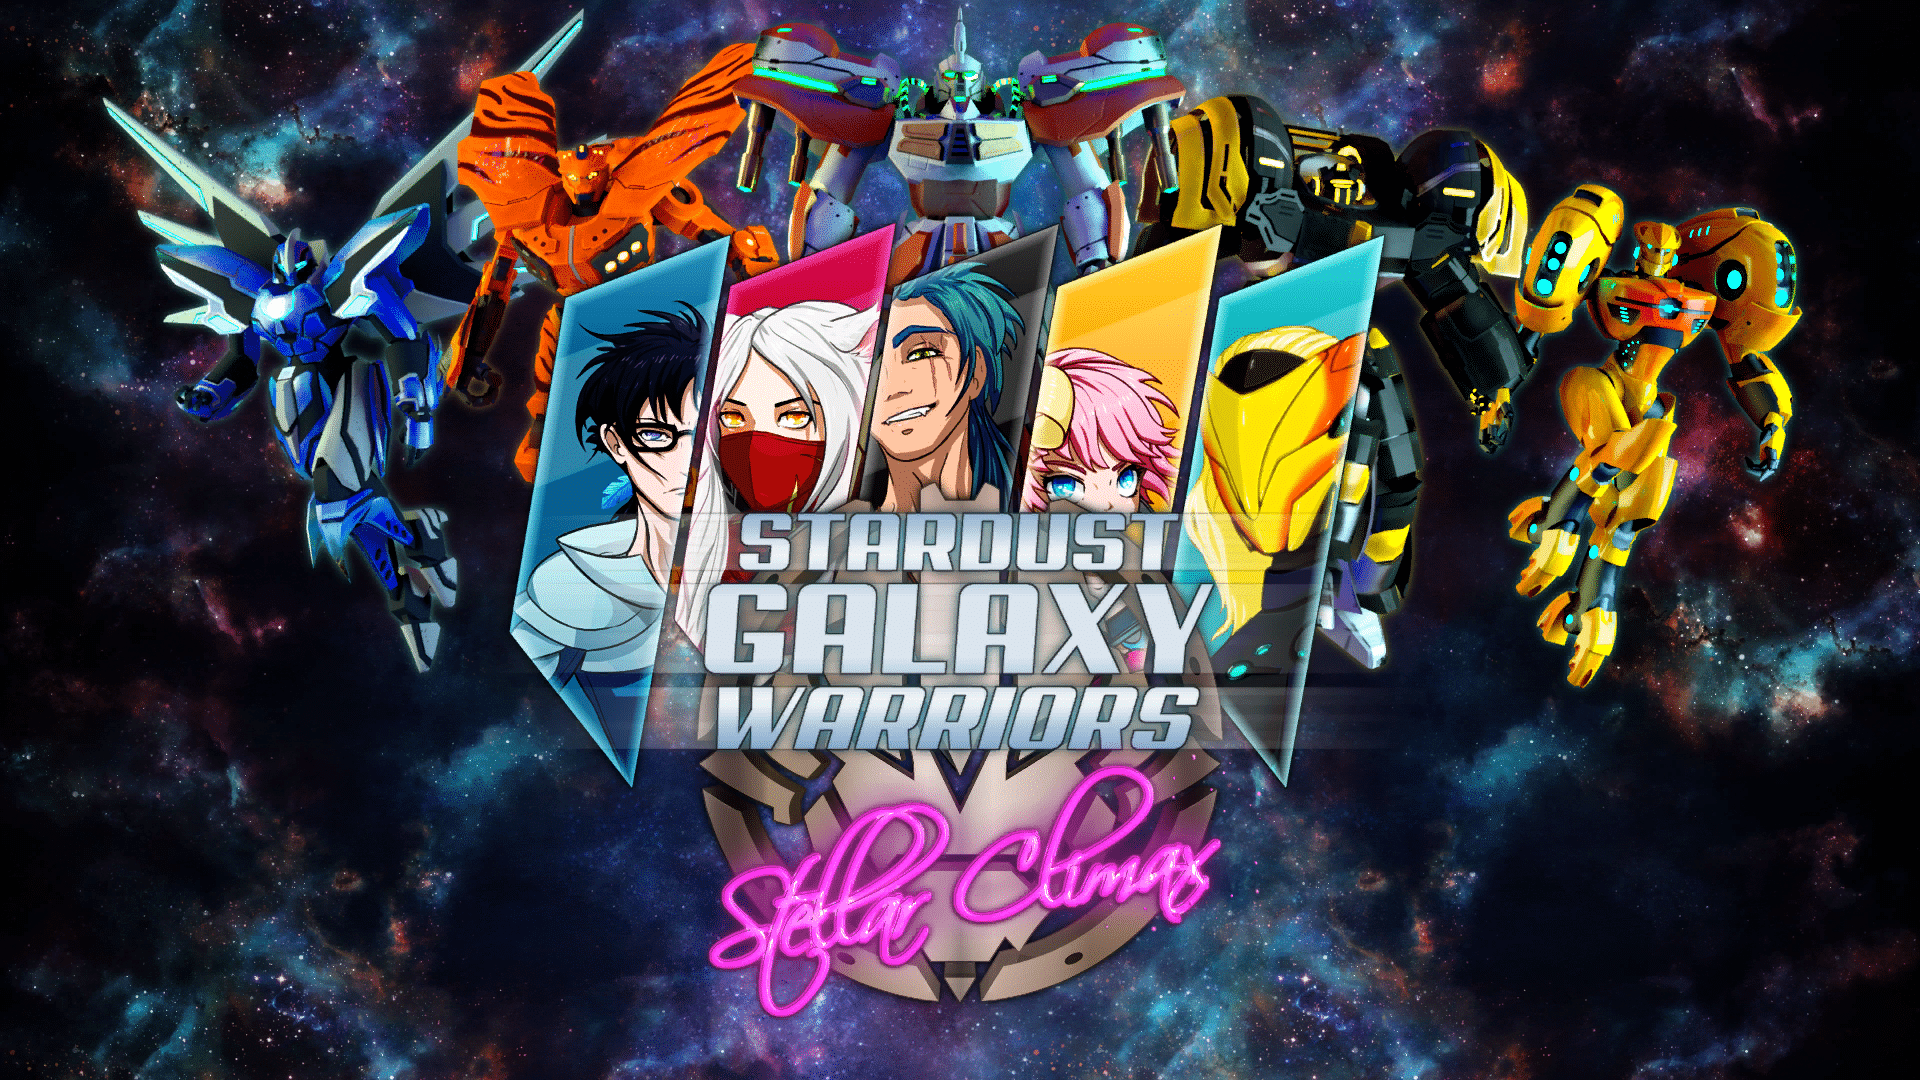 Stardust Galaxy Warriors: Stellar Climax land deze maand